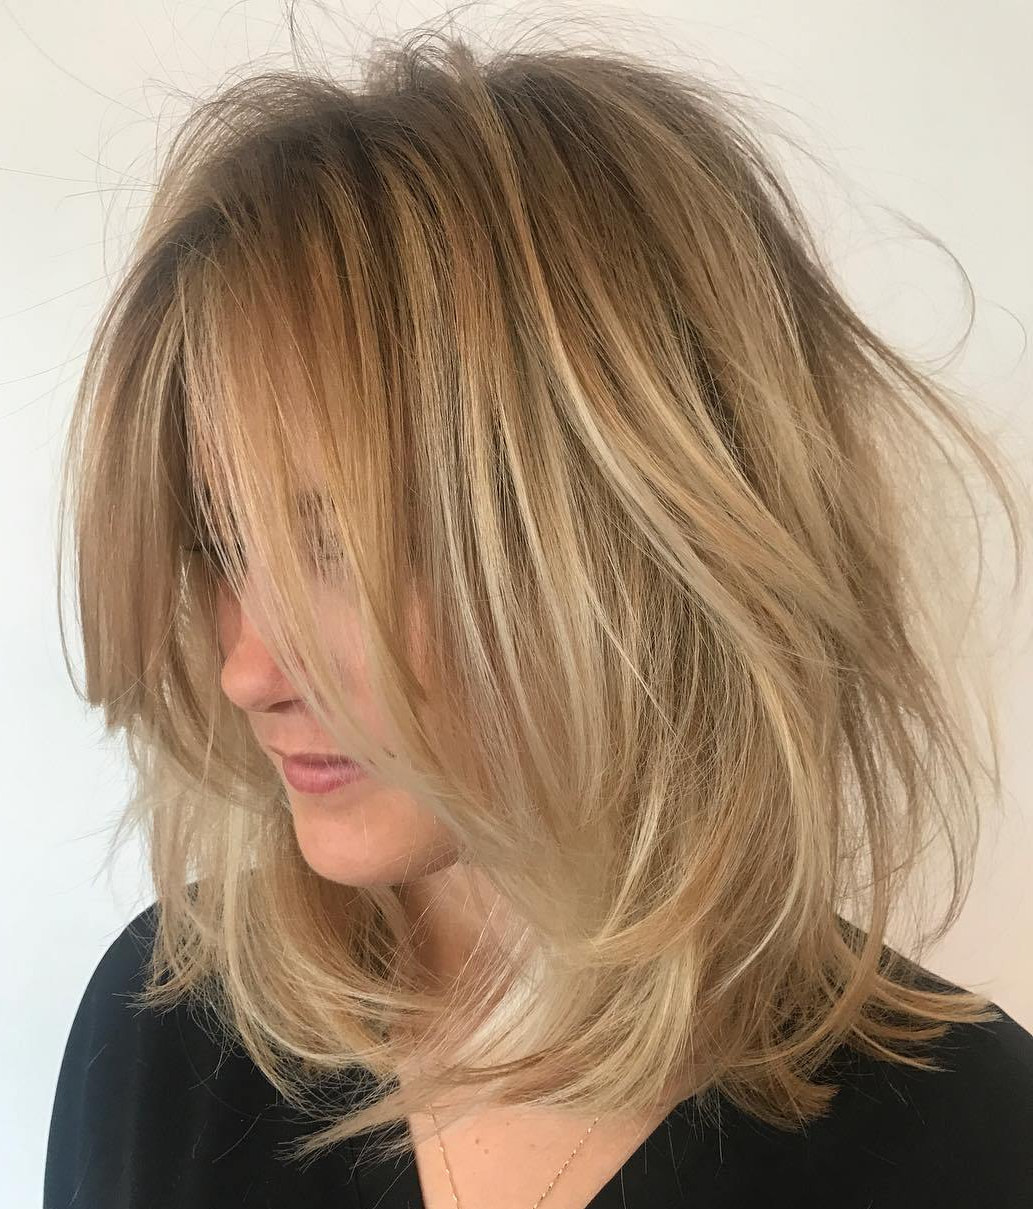 70 Devastatingly Cool Haircuts For Thin Hair Throughout Layered Bob Haircuts For Fine Hair (View 11 of 20)